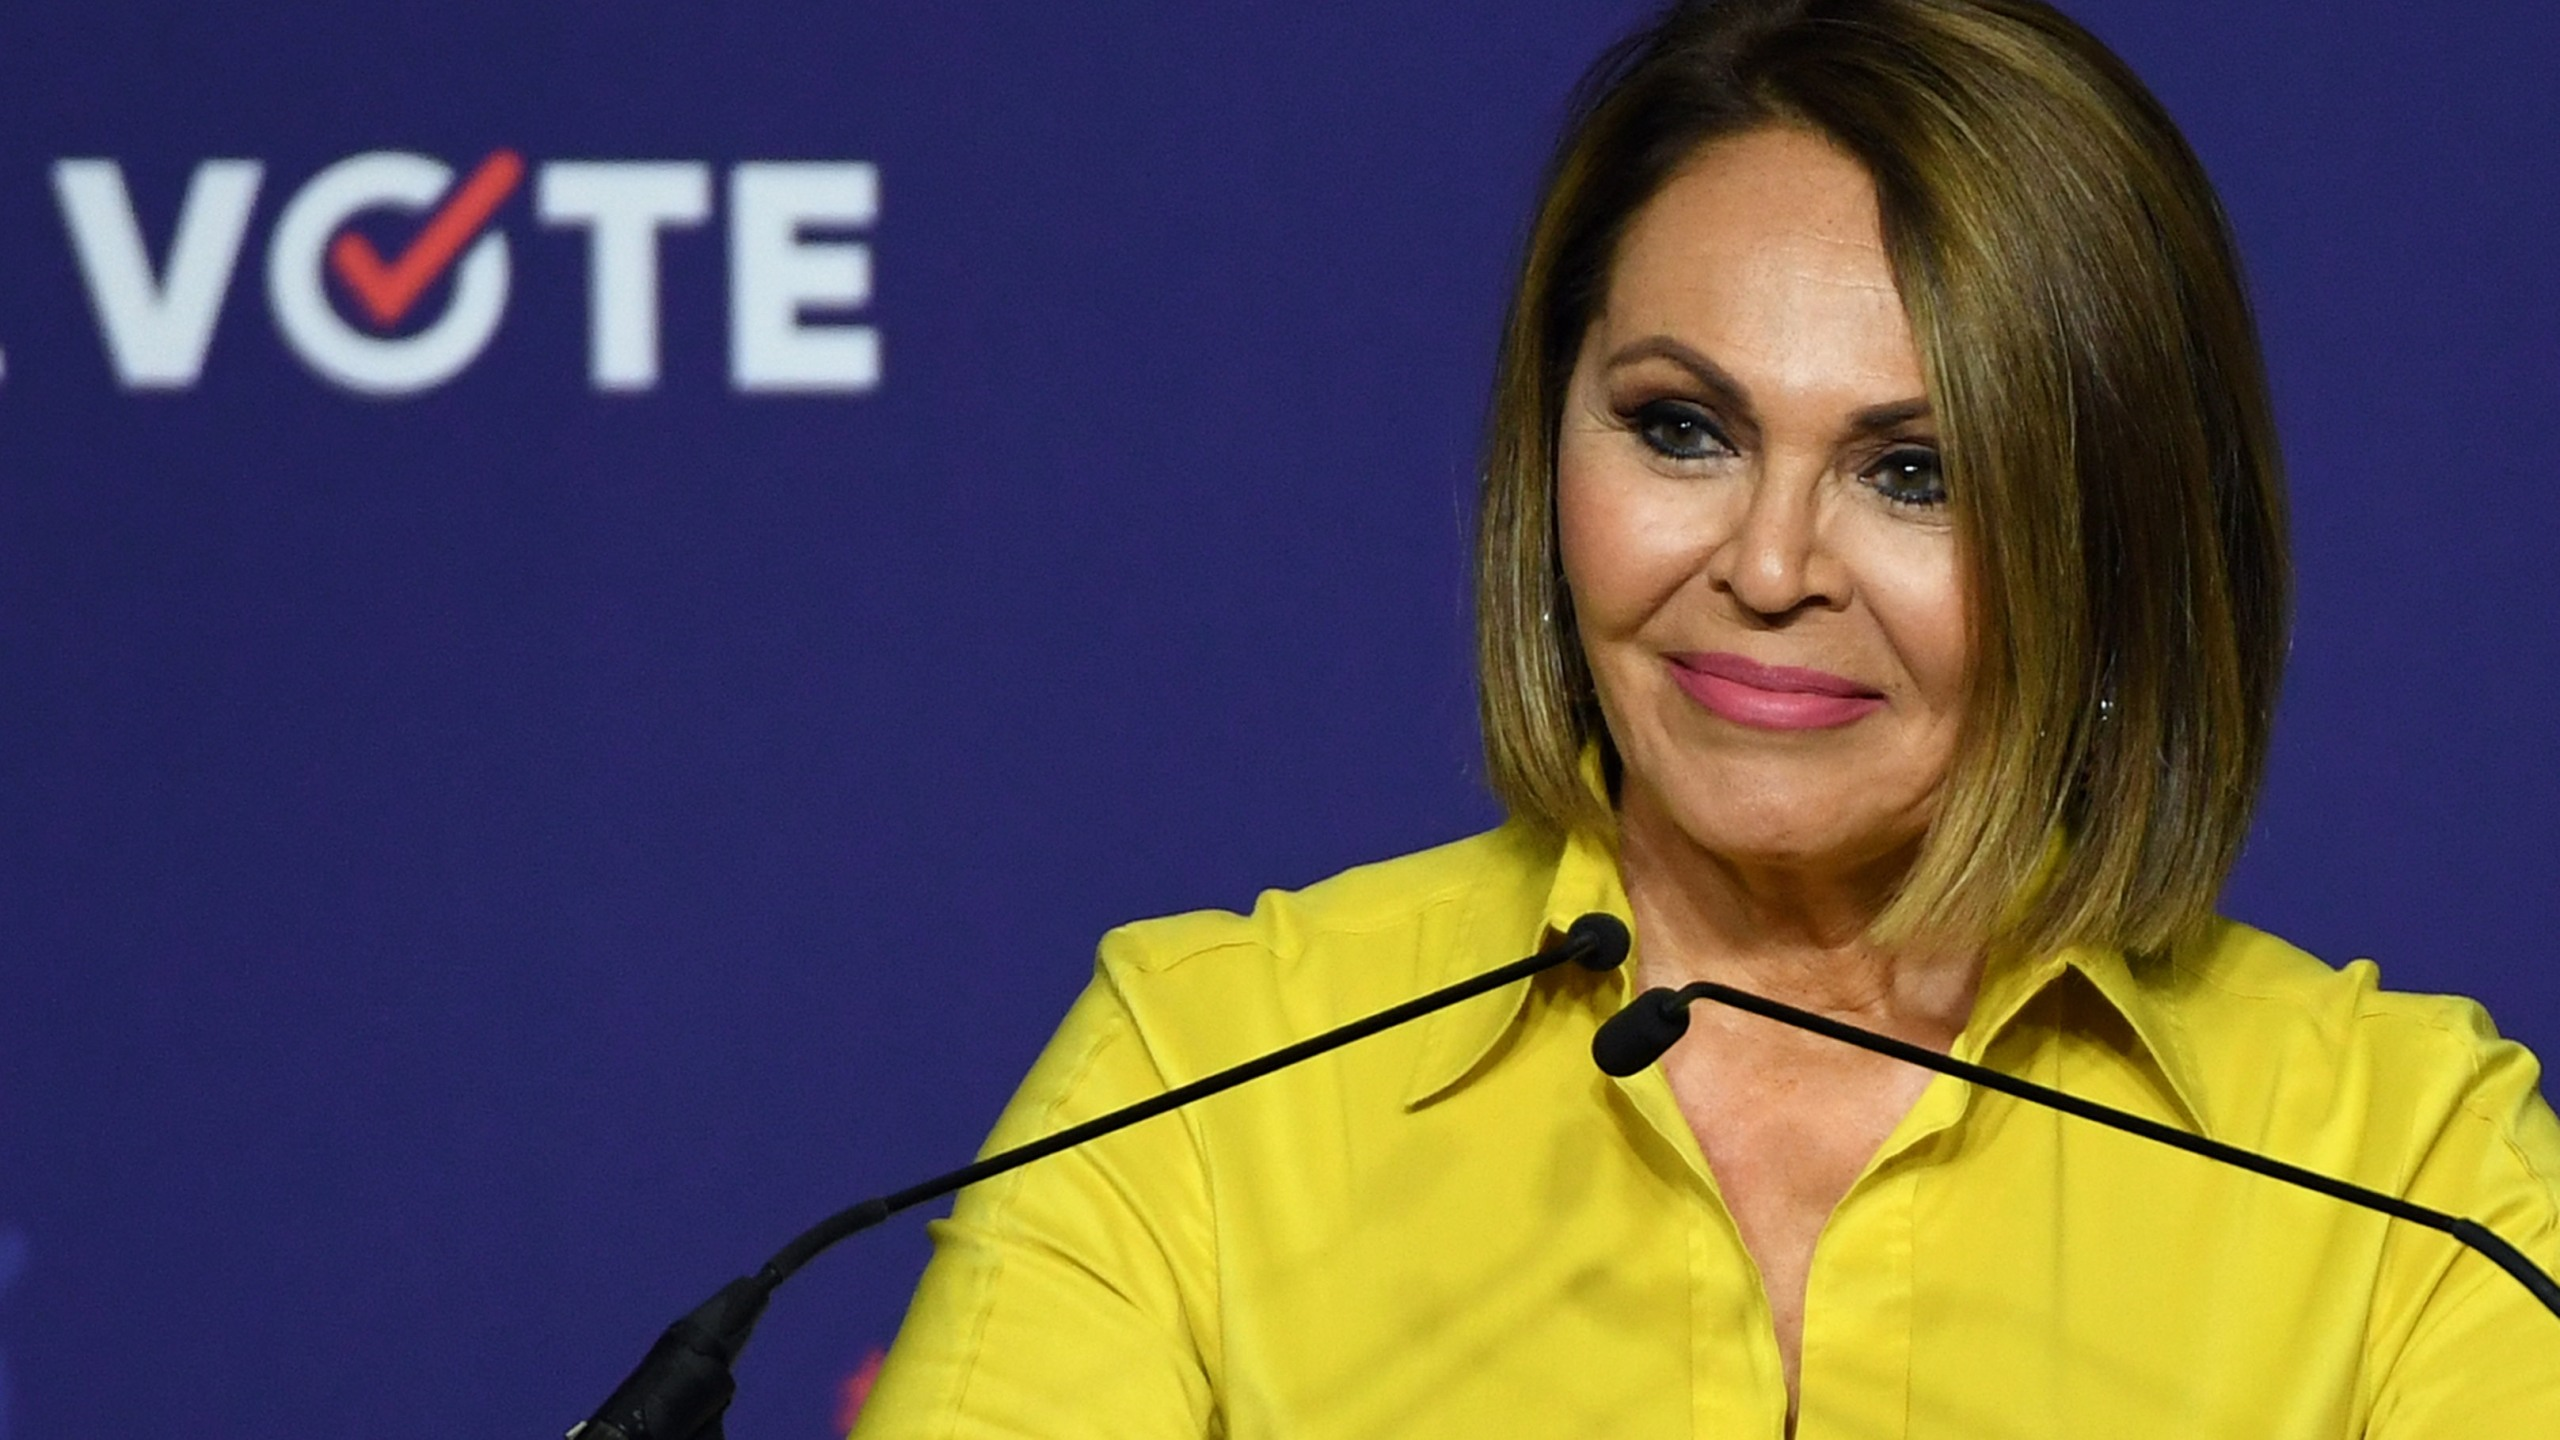 Journalist Maria Elena Salinas speaks during a rally for When We All Vote's National Week of Action featuring former first lady Michelle Obama at Chaparral High School on Sept. 23, 2018, in Las Vegas, Nevada. (Credit: Ethan Miller/Getty Images)